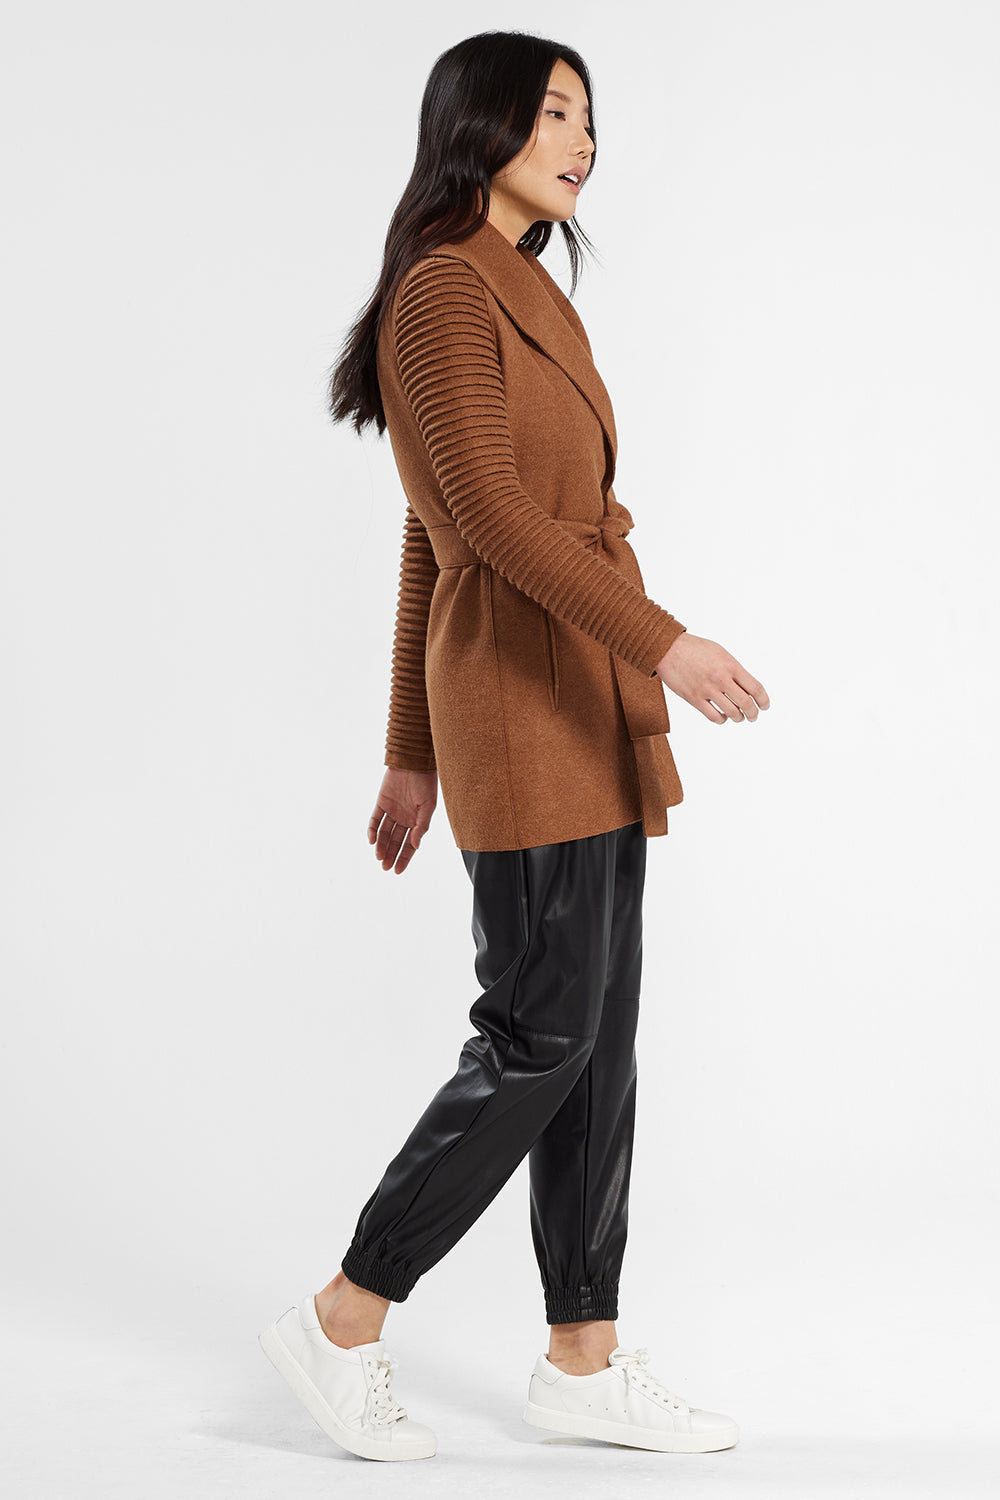 Sentaler Wrap Coat with Ribbed Sleeves featured in Superfine Alpaca and available in Dark Camel. Seen from side.